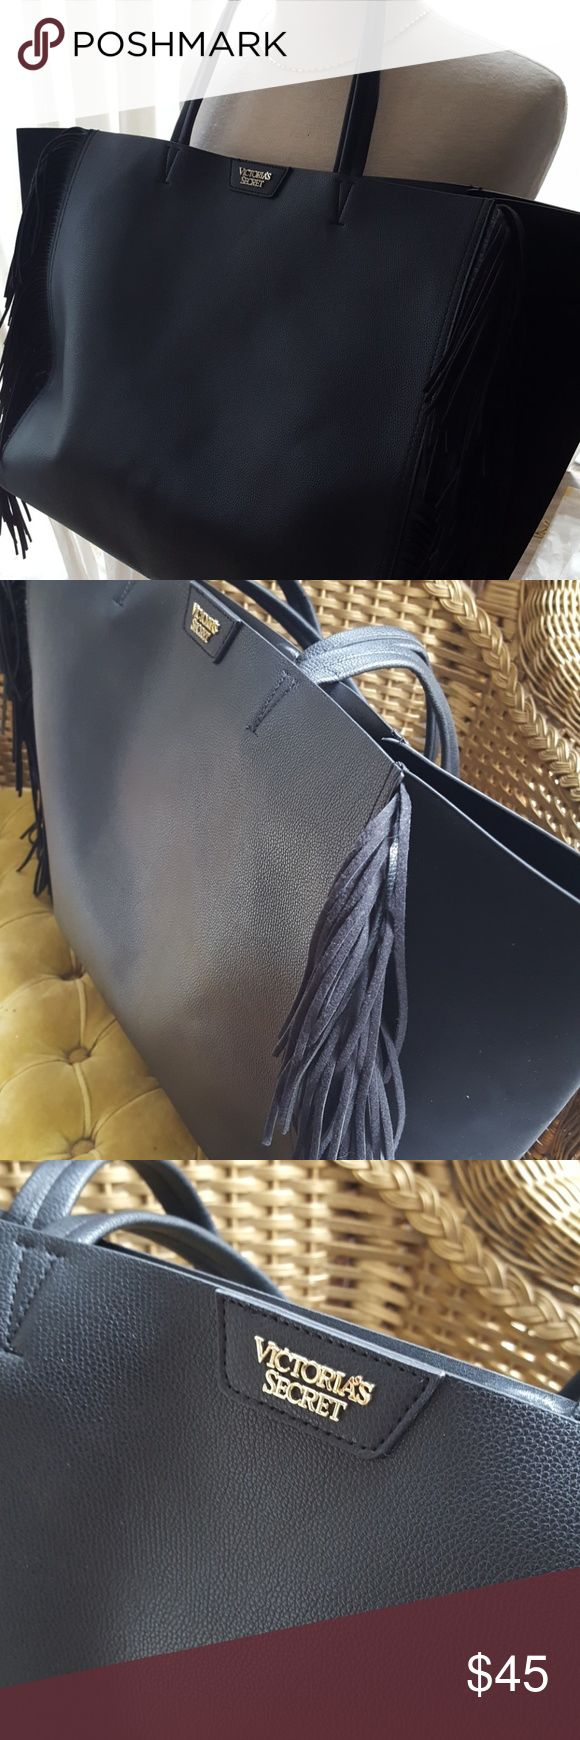 """Victoria's Secret black on black fringe tote New without tags, black fringe tote by Victoria's Secret. Would make a great travel buddy! Bag measures 23"""" wide by 14"""" tall with a spacious interior. Victoria's Secret Bags Totes"""